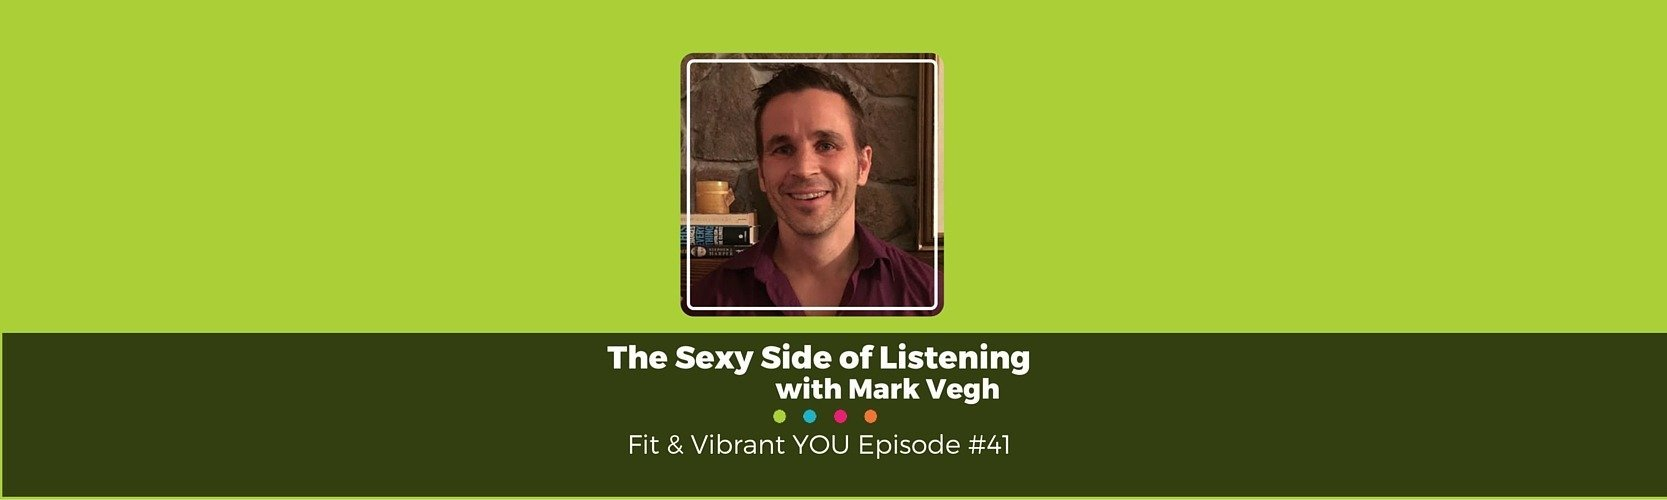 FVY 41: The Sexy Side of Listening with Mark Vegh